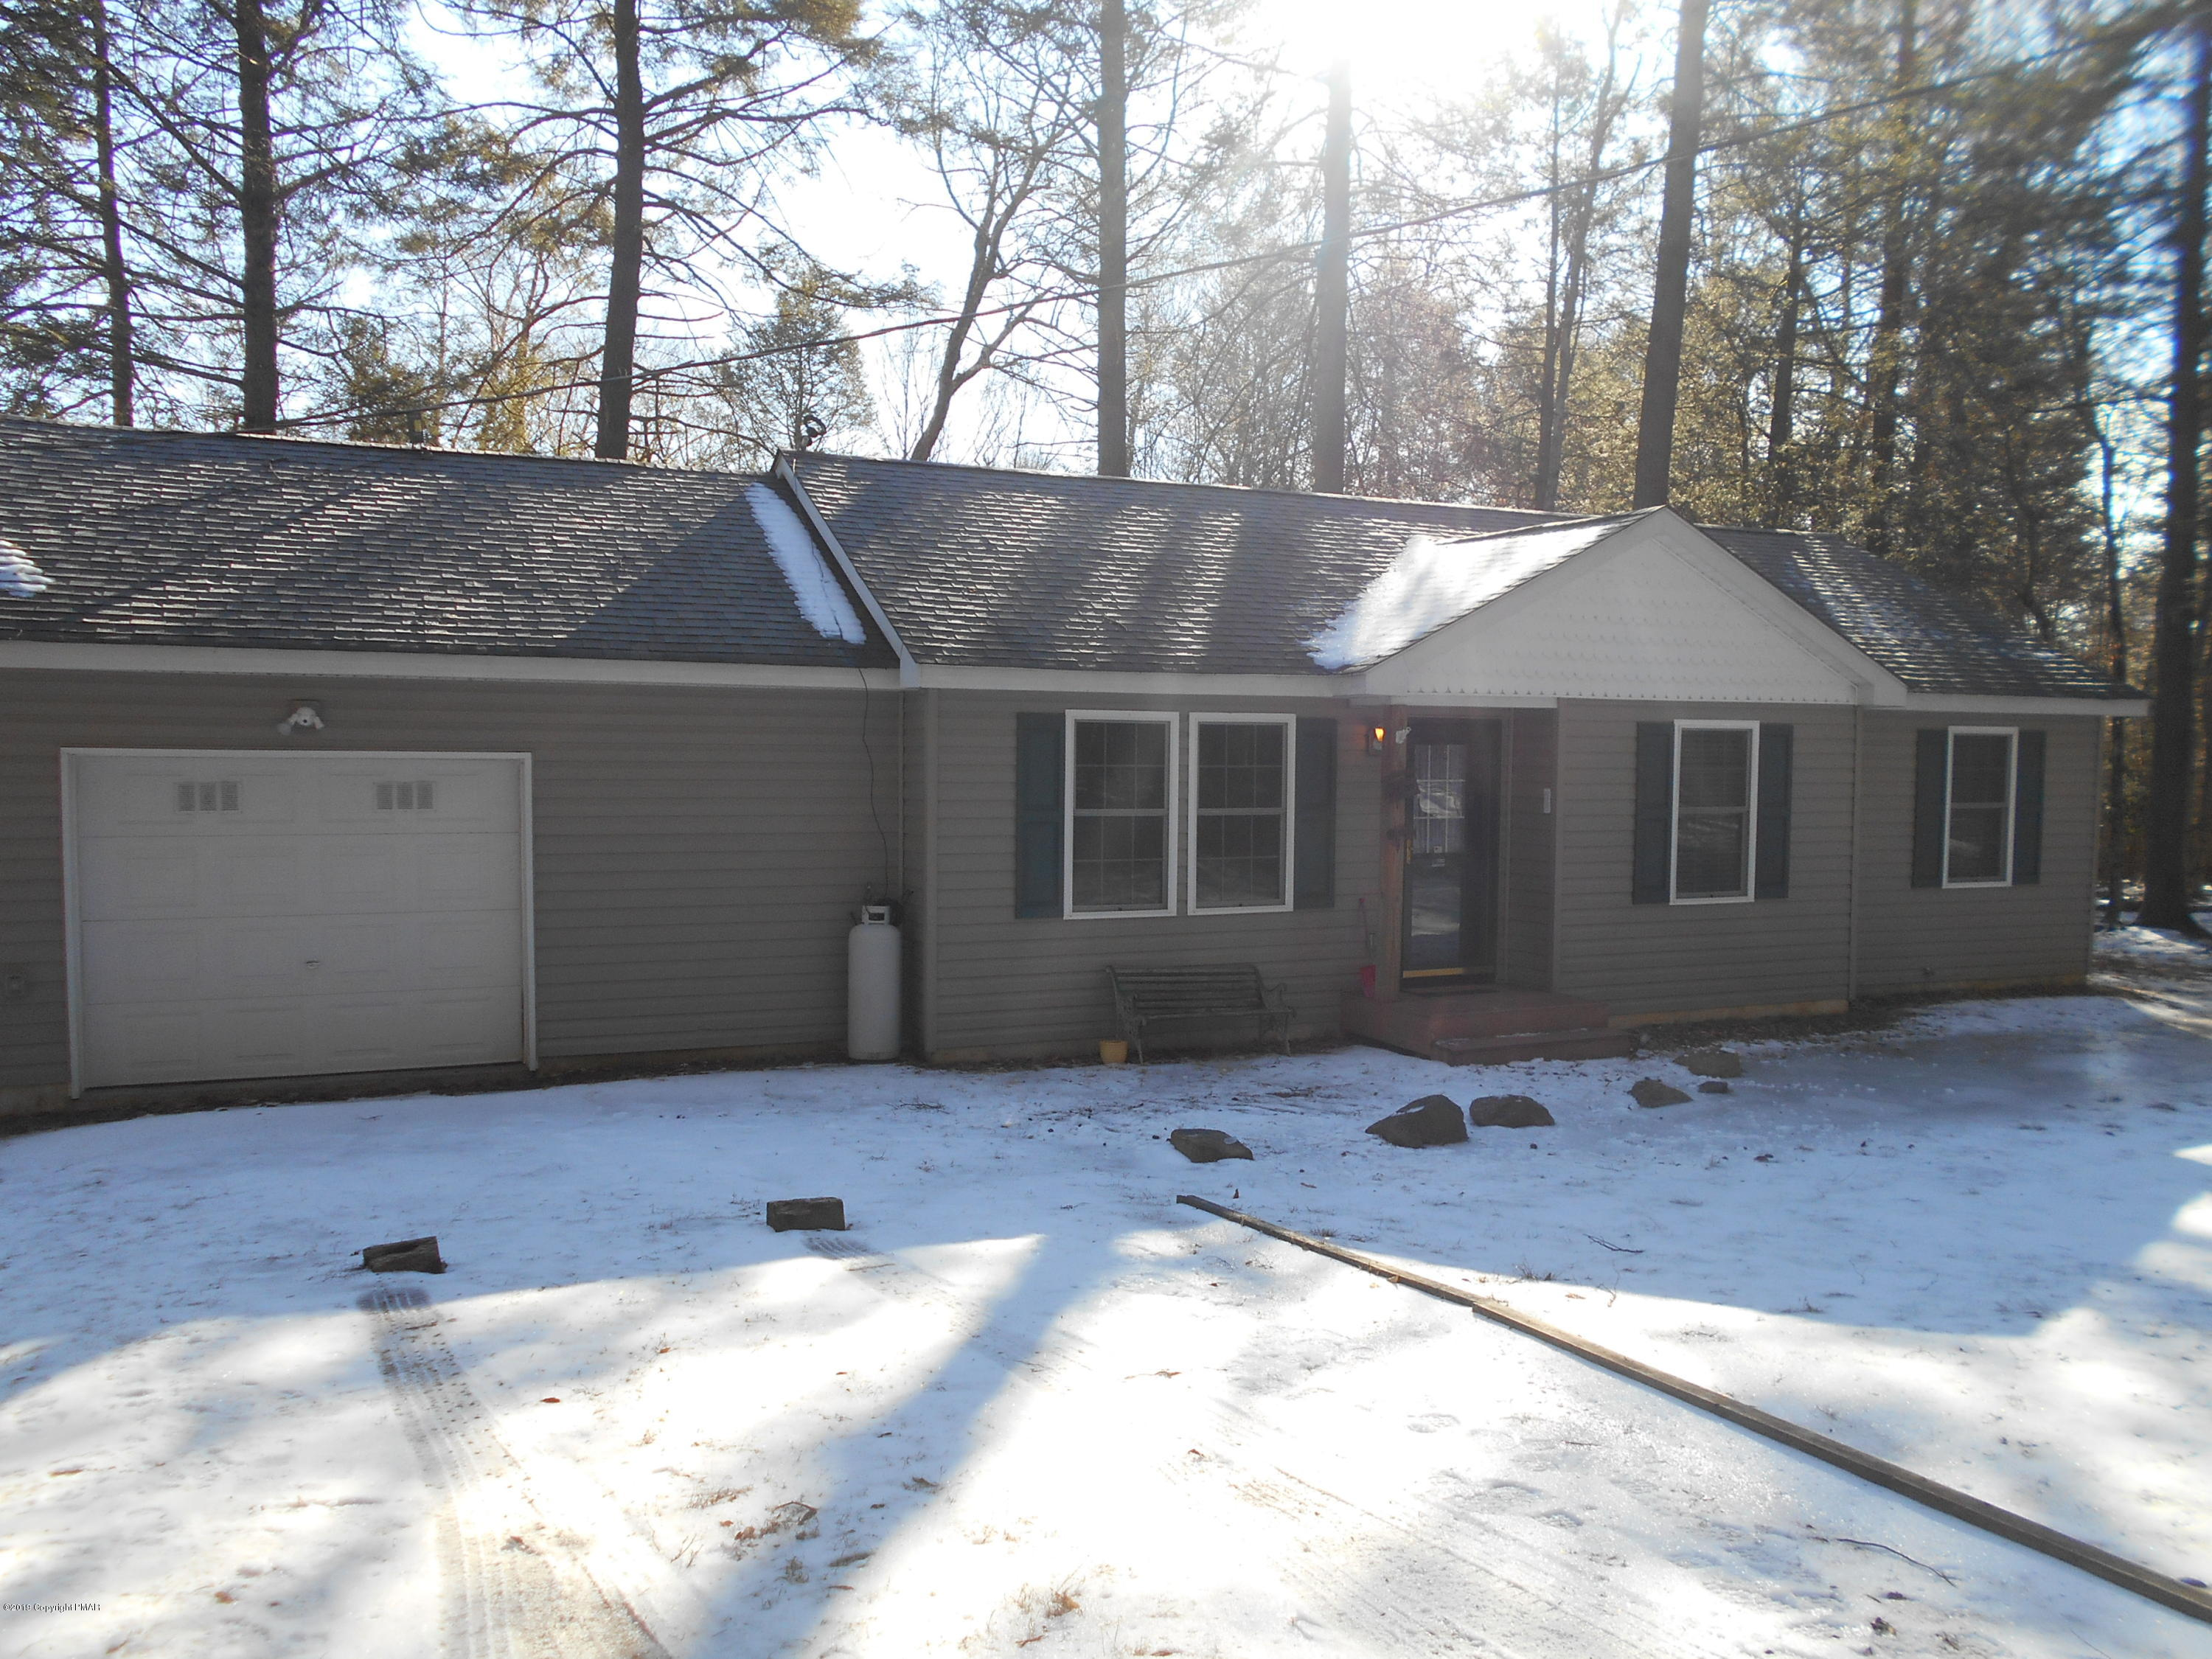 148 Timberlane Dr, Albrightsville, PA 18210